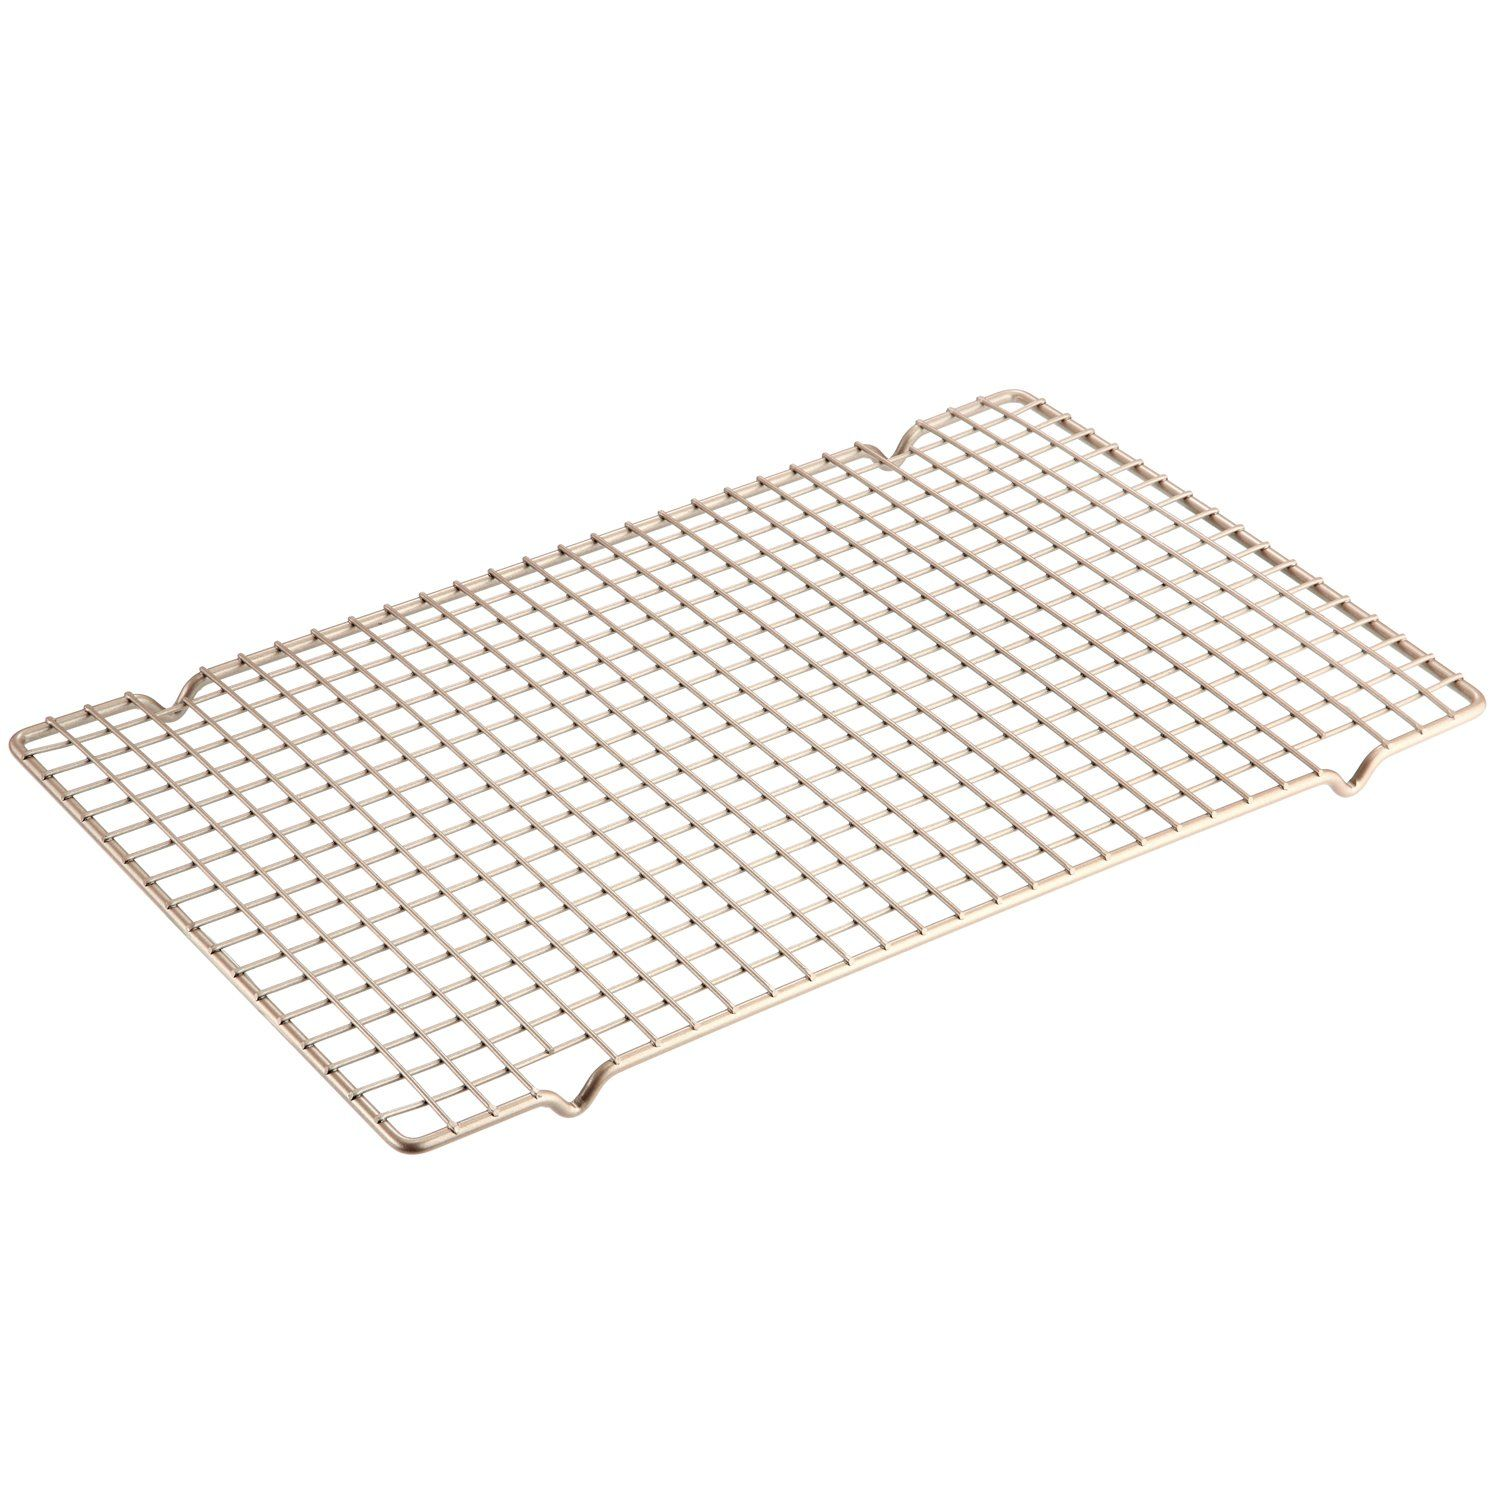 Chefmade Baking And Cooling Rack 16 Inch Non Stick Bold Grid